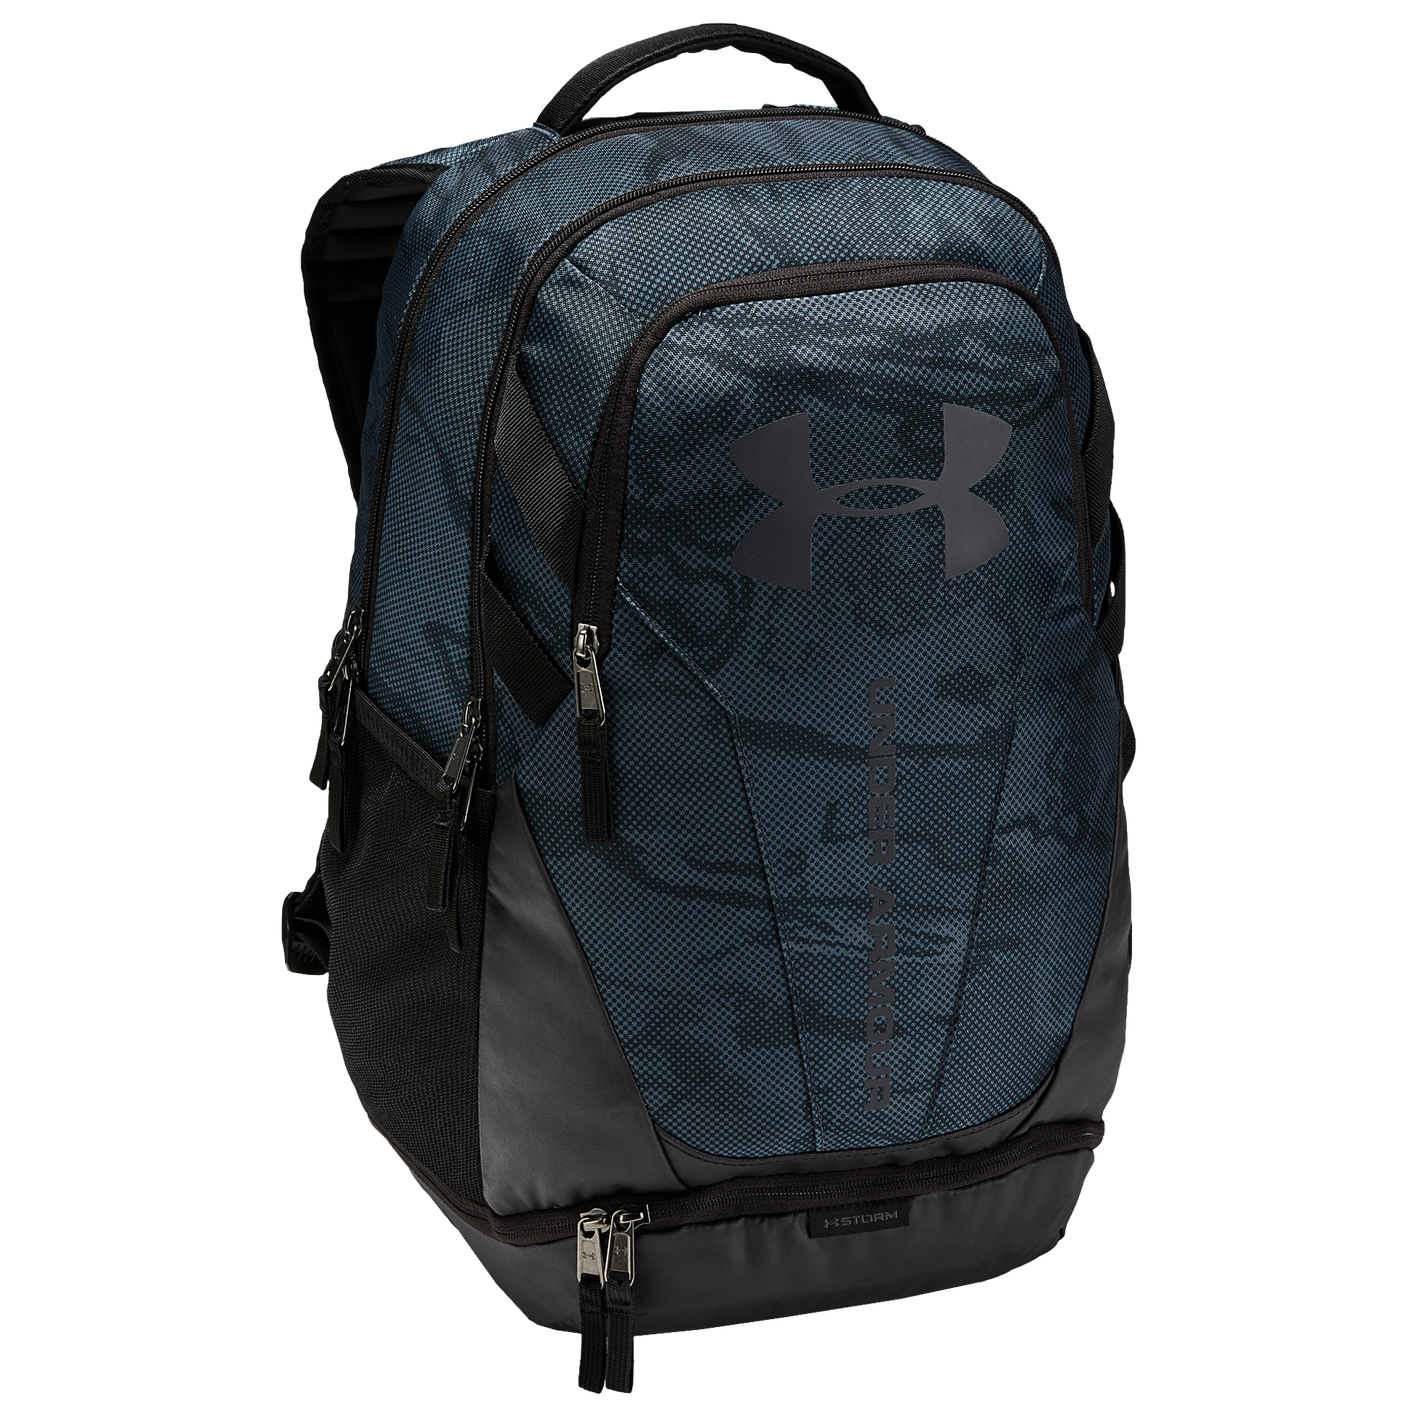 fab6dc817e Under Armour Hustle Backpack 3.0 - Casual - Accessories - Blackout ...